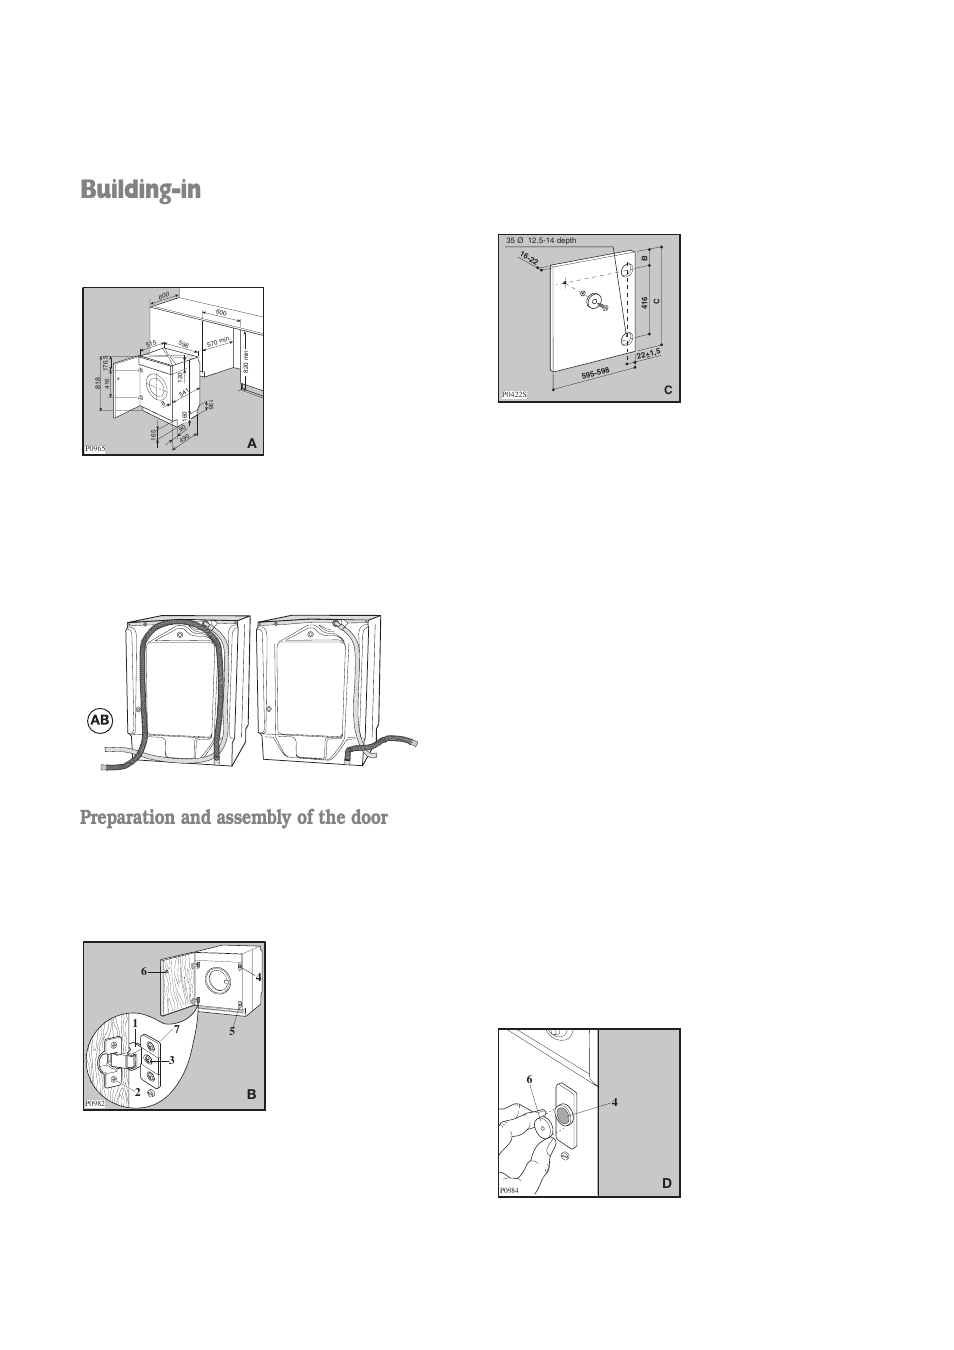 building in preparation and assembly of the door electrolux rh manualsdir com User Manual Template Manuals in PDF